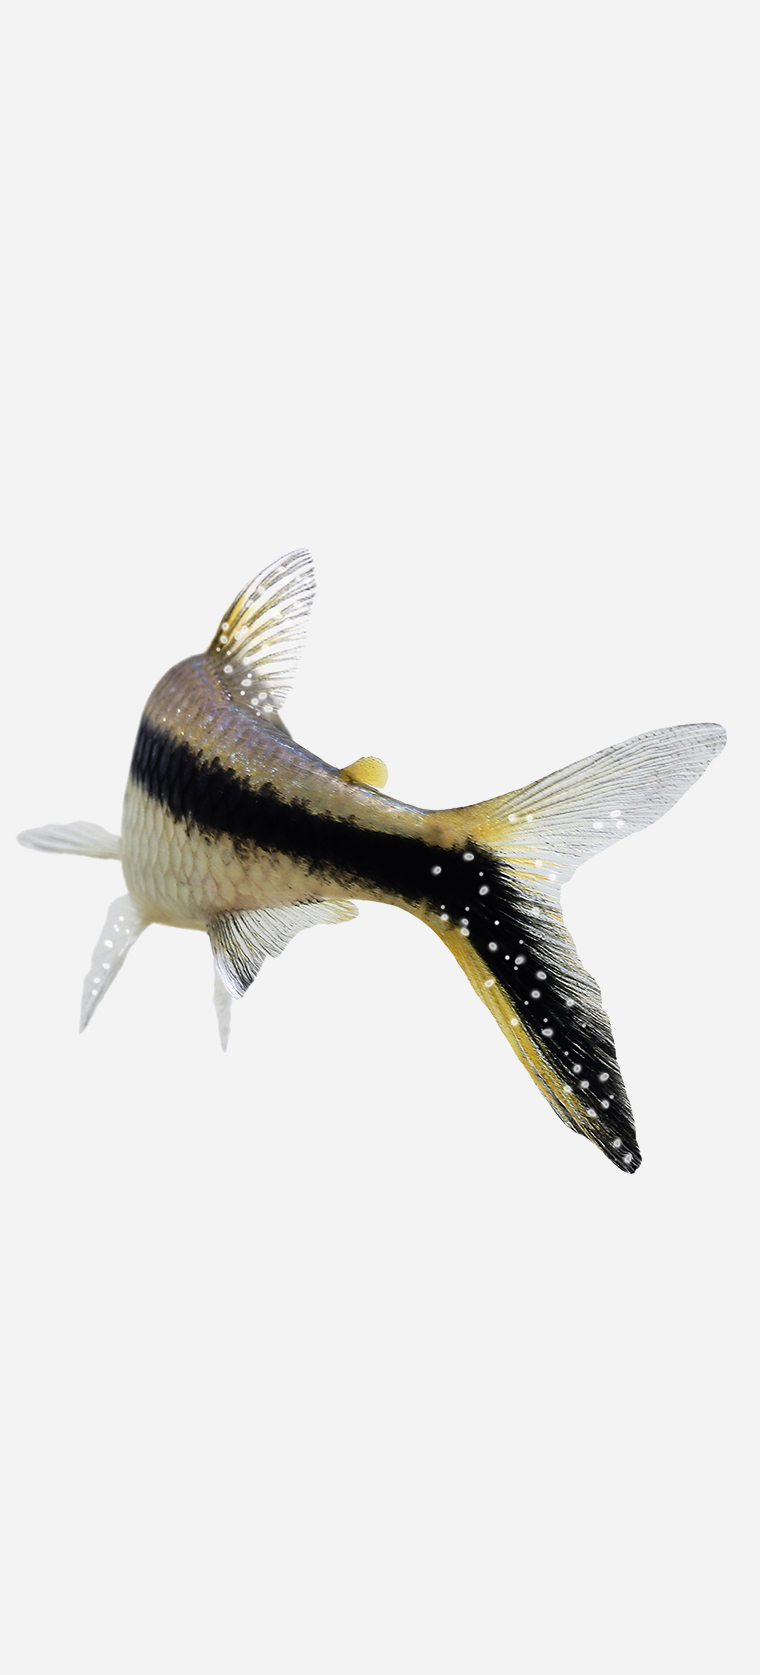 Black, yellow and silver aquarium fish with salt like white specs across it